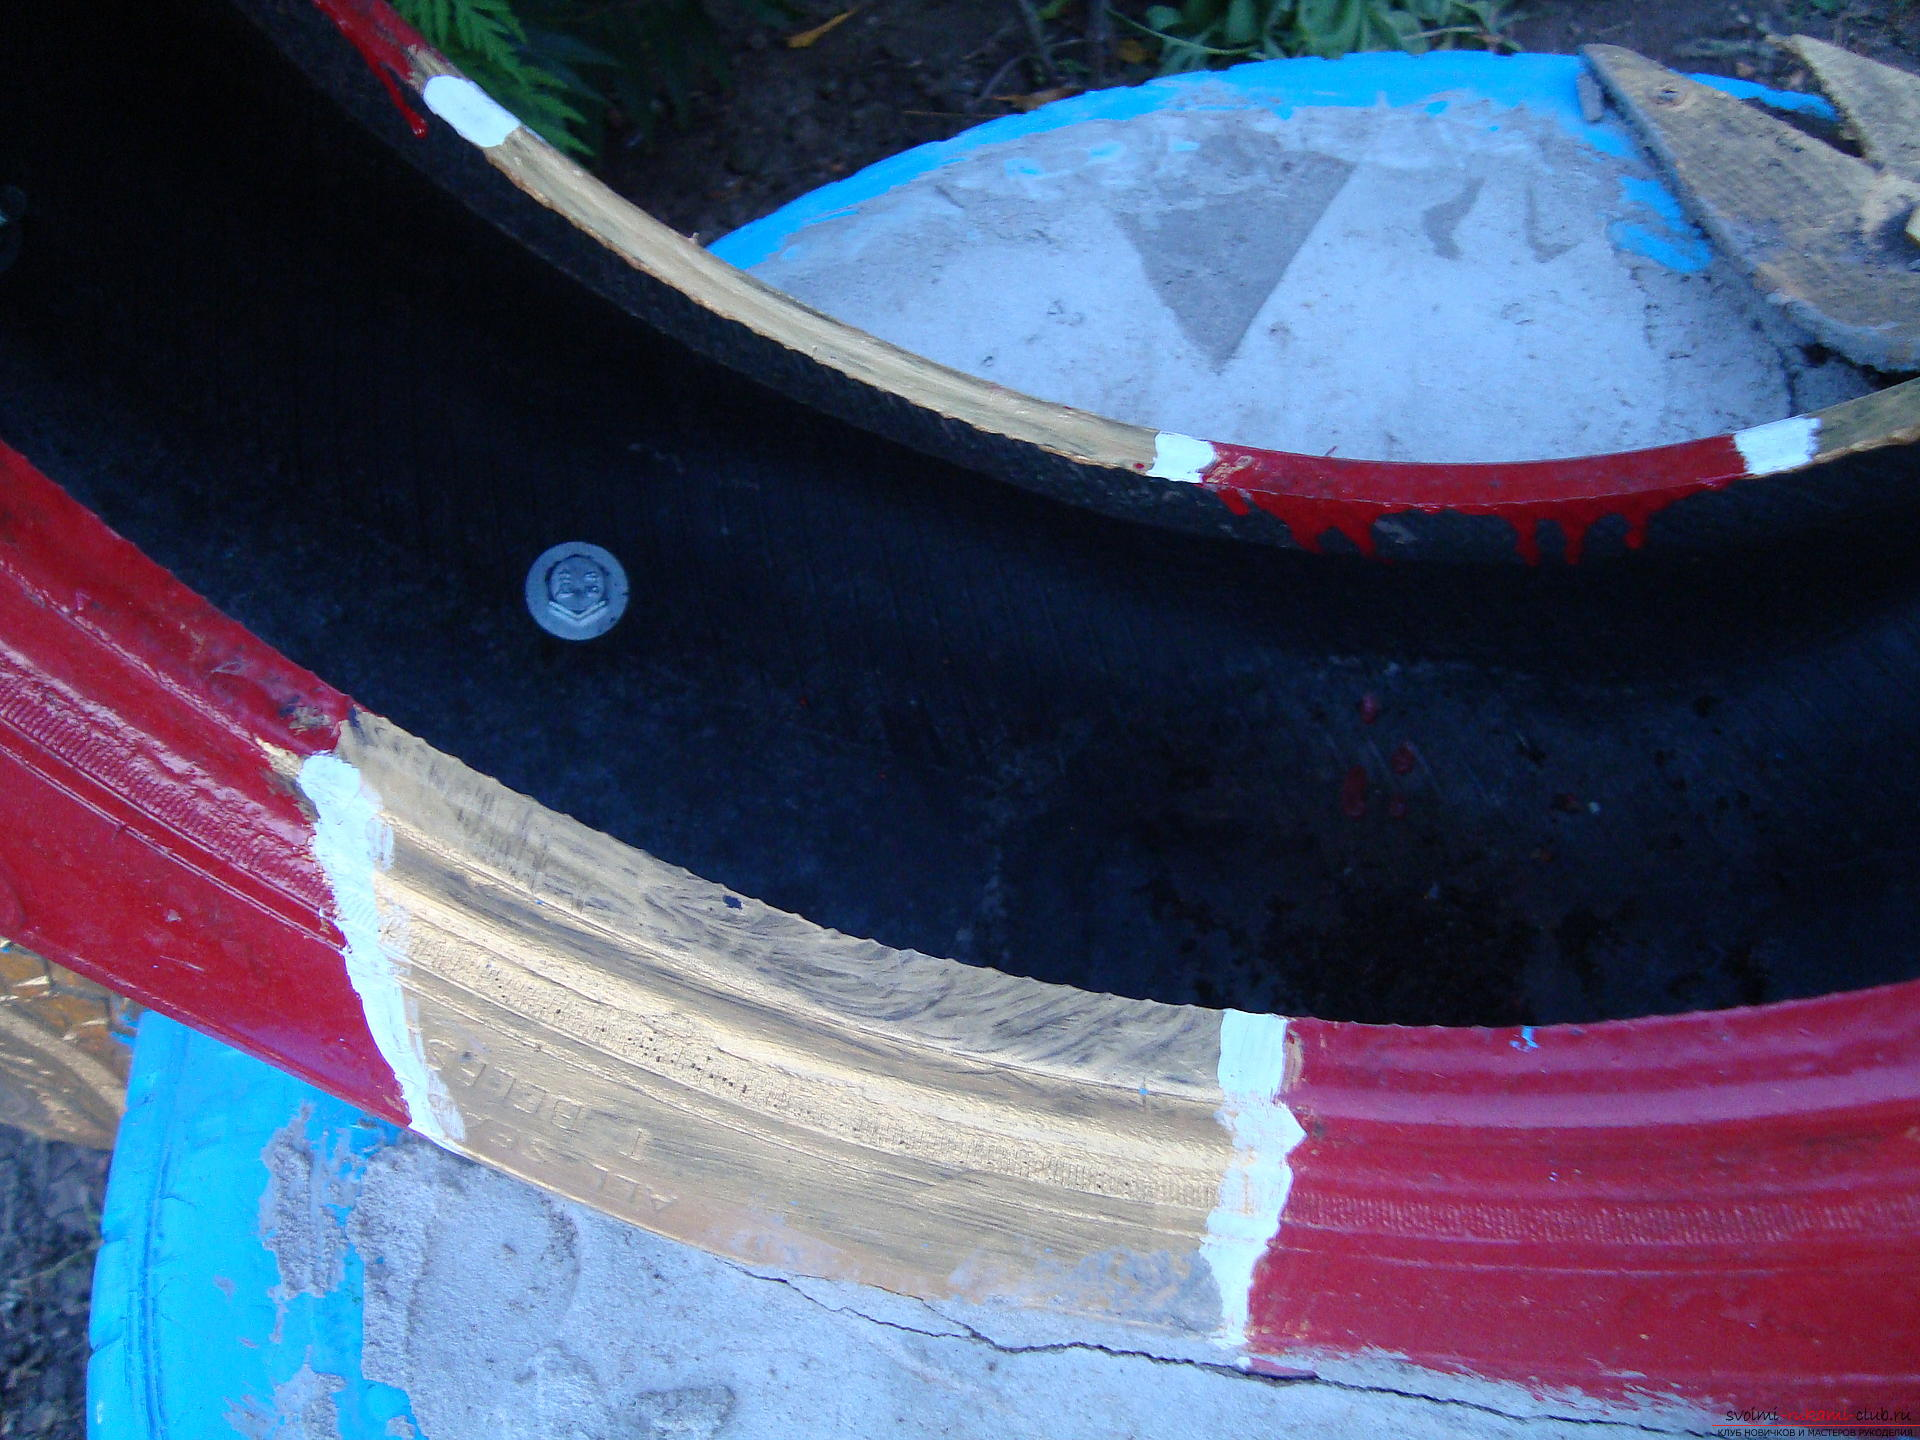 Different crafts made of tires can decorate the yard or playground .. Photo # 2